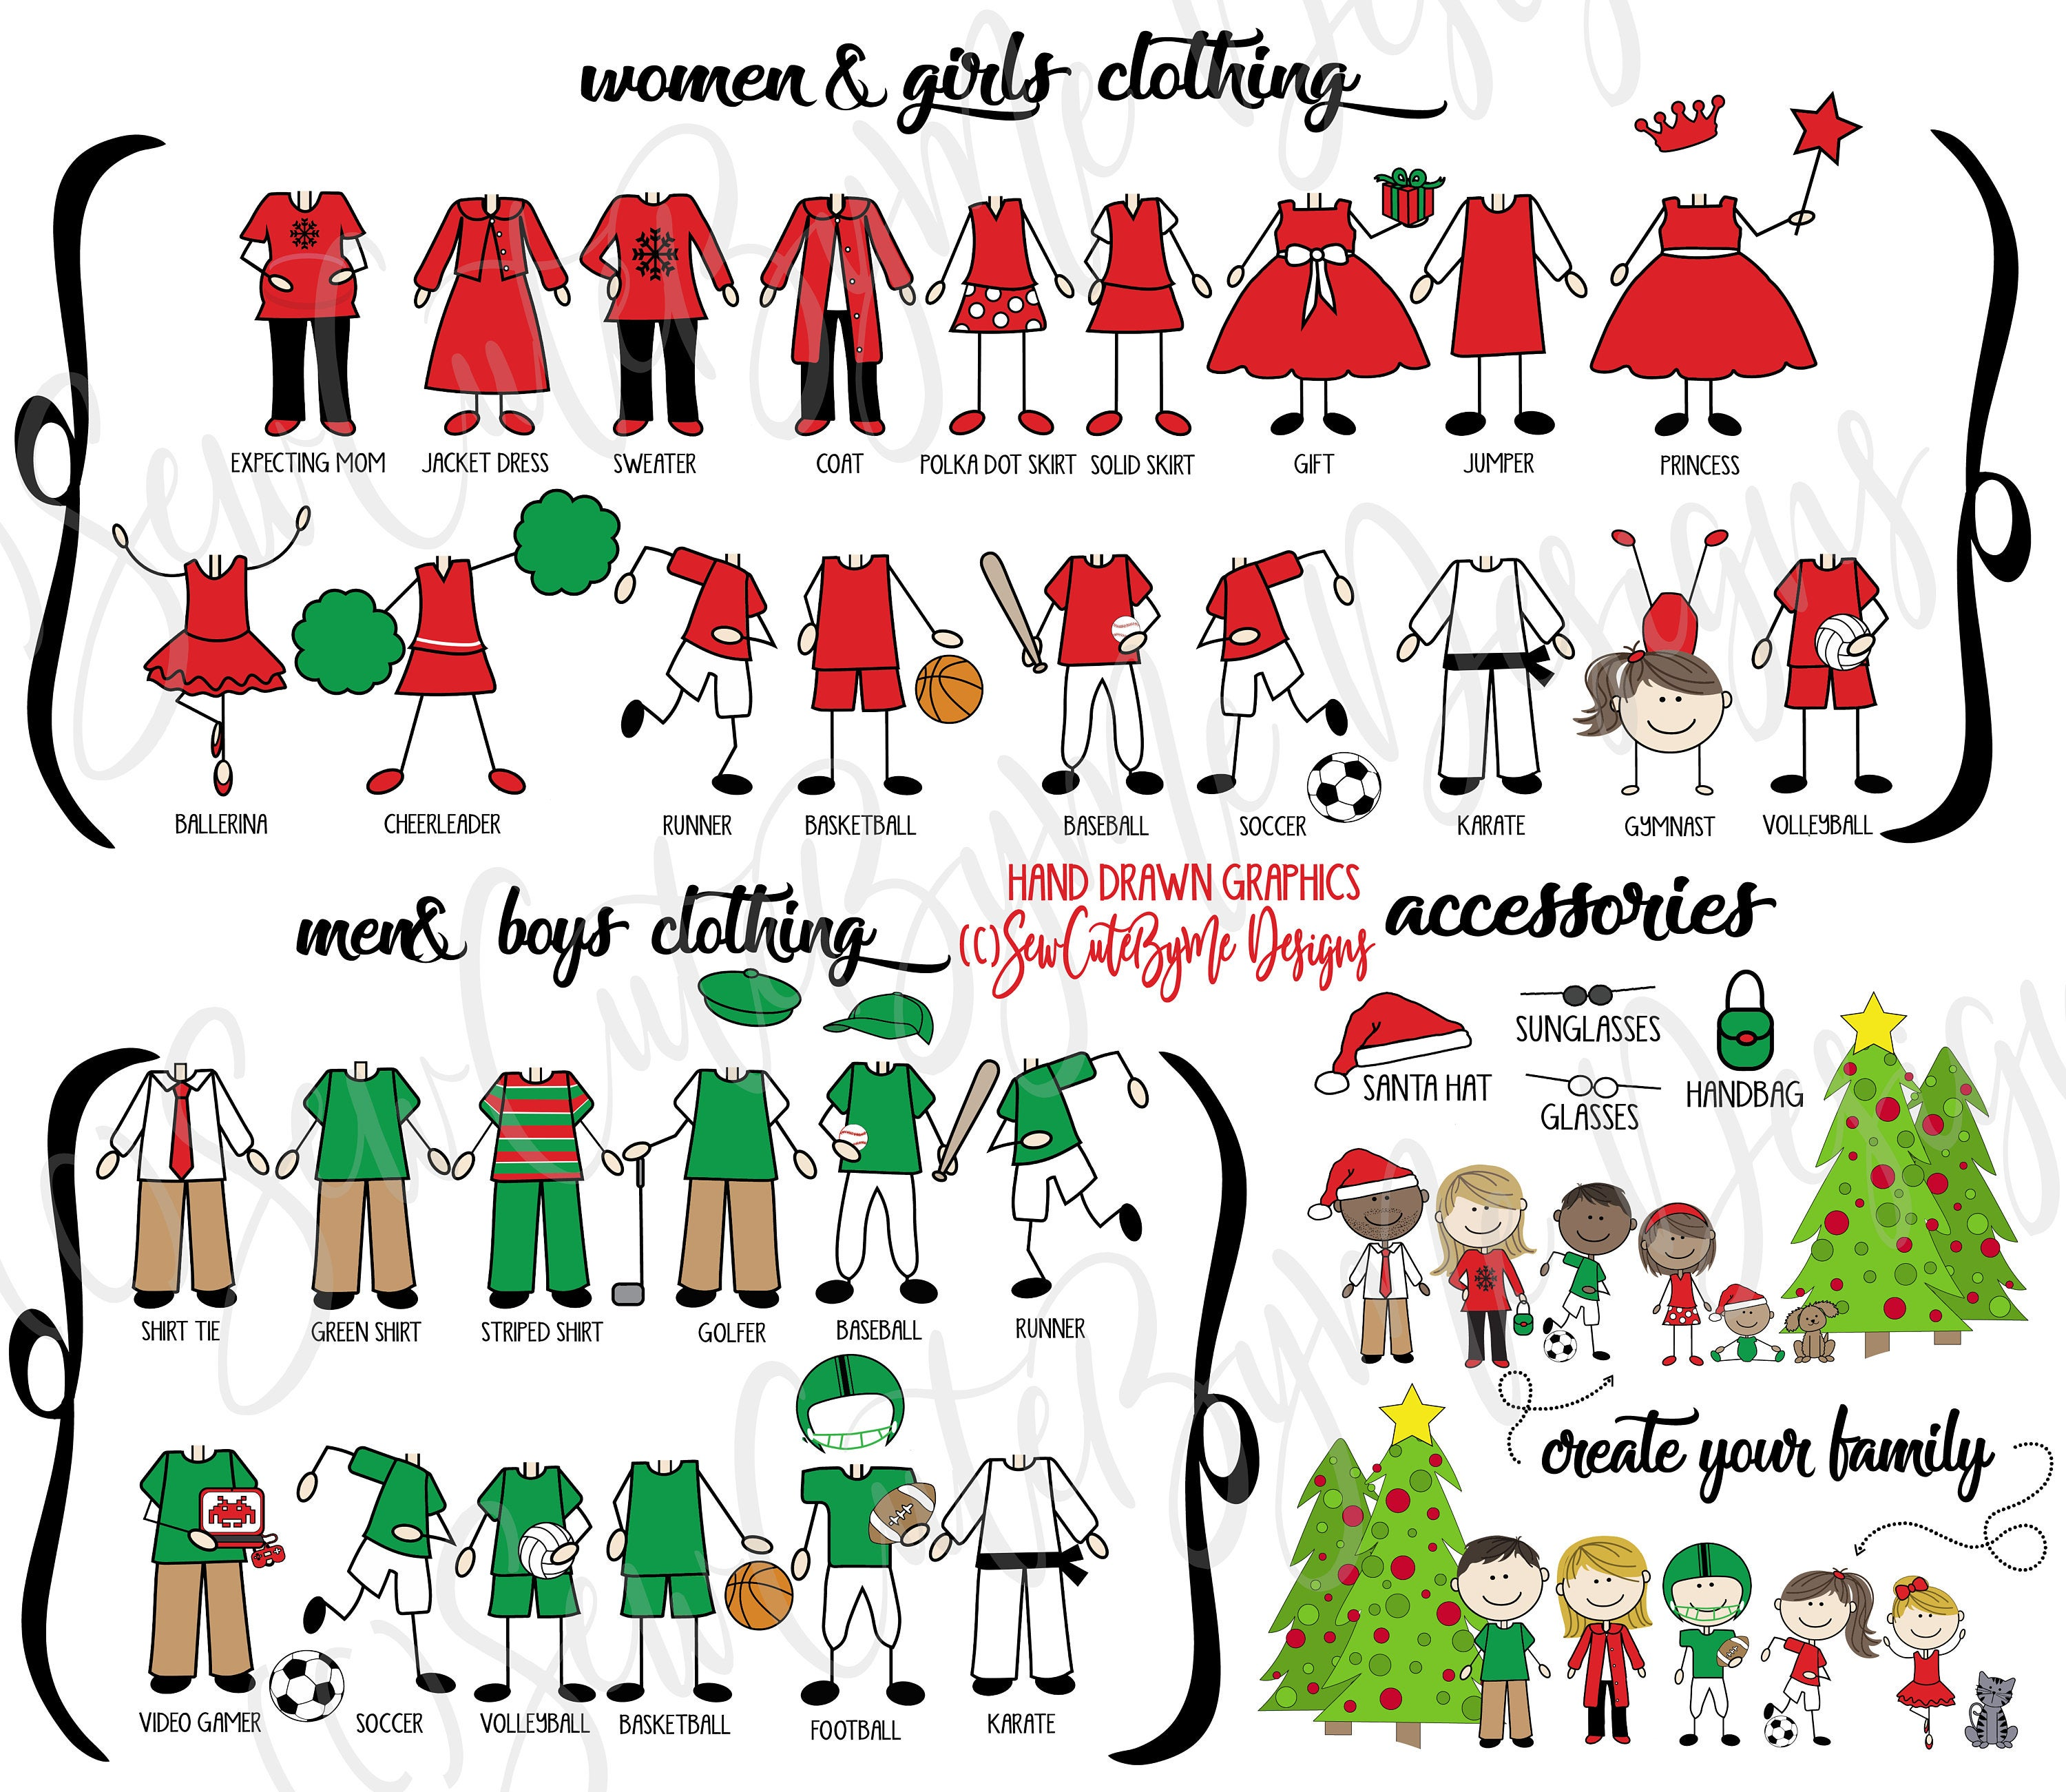 Family Portrait Christmas Ornament - clothing choices